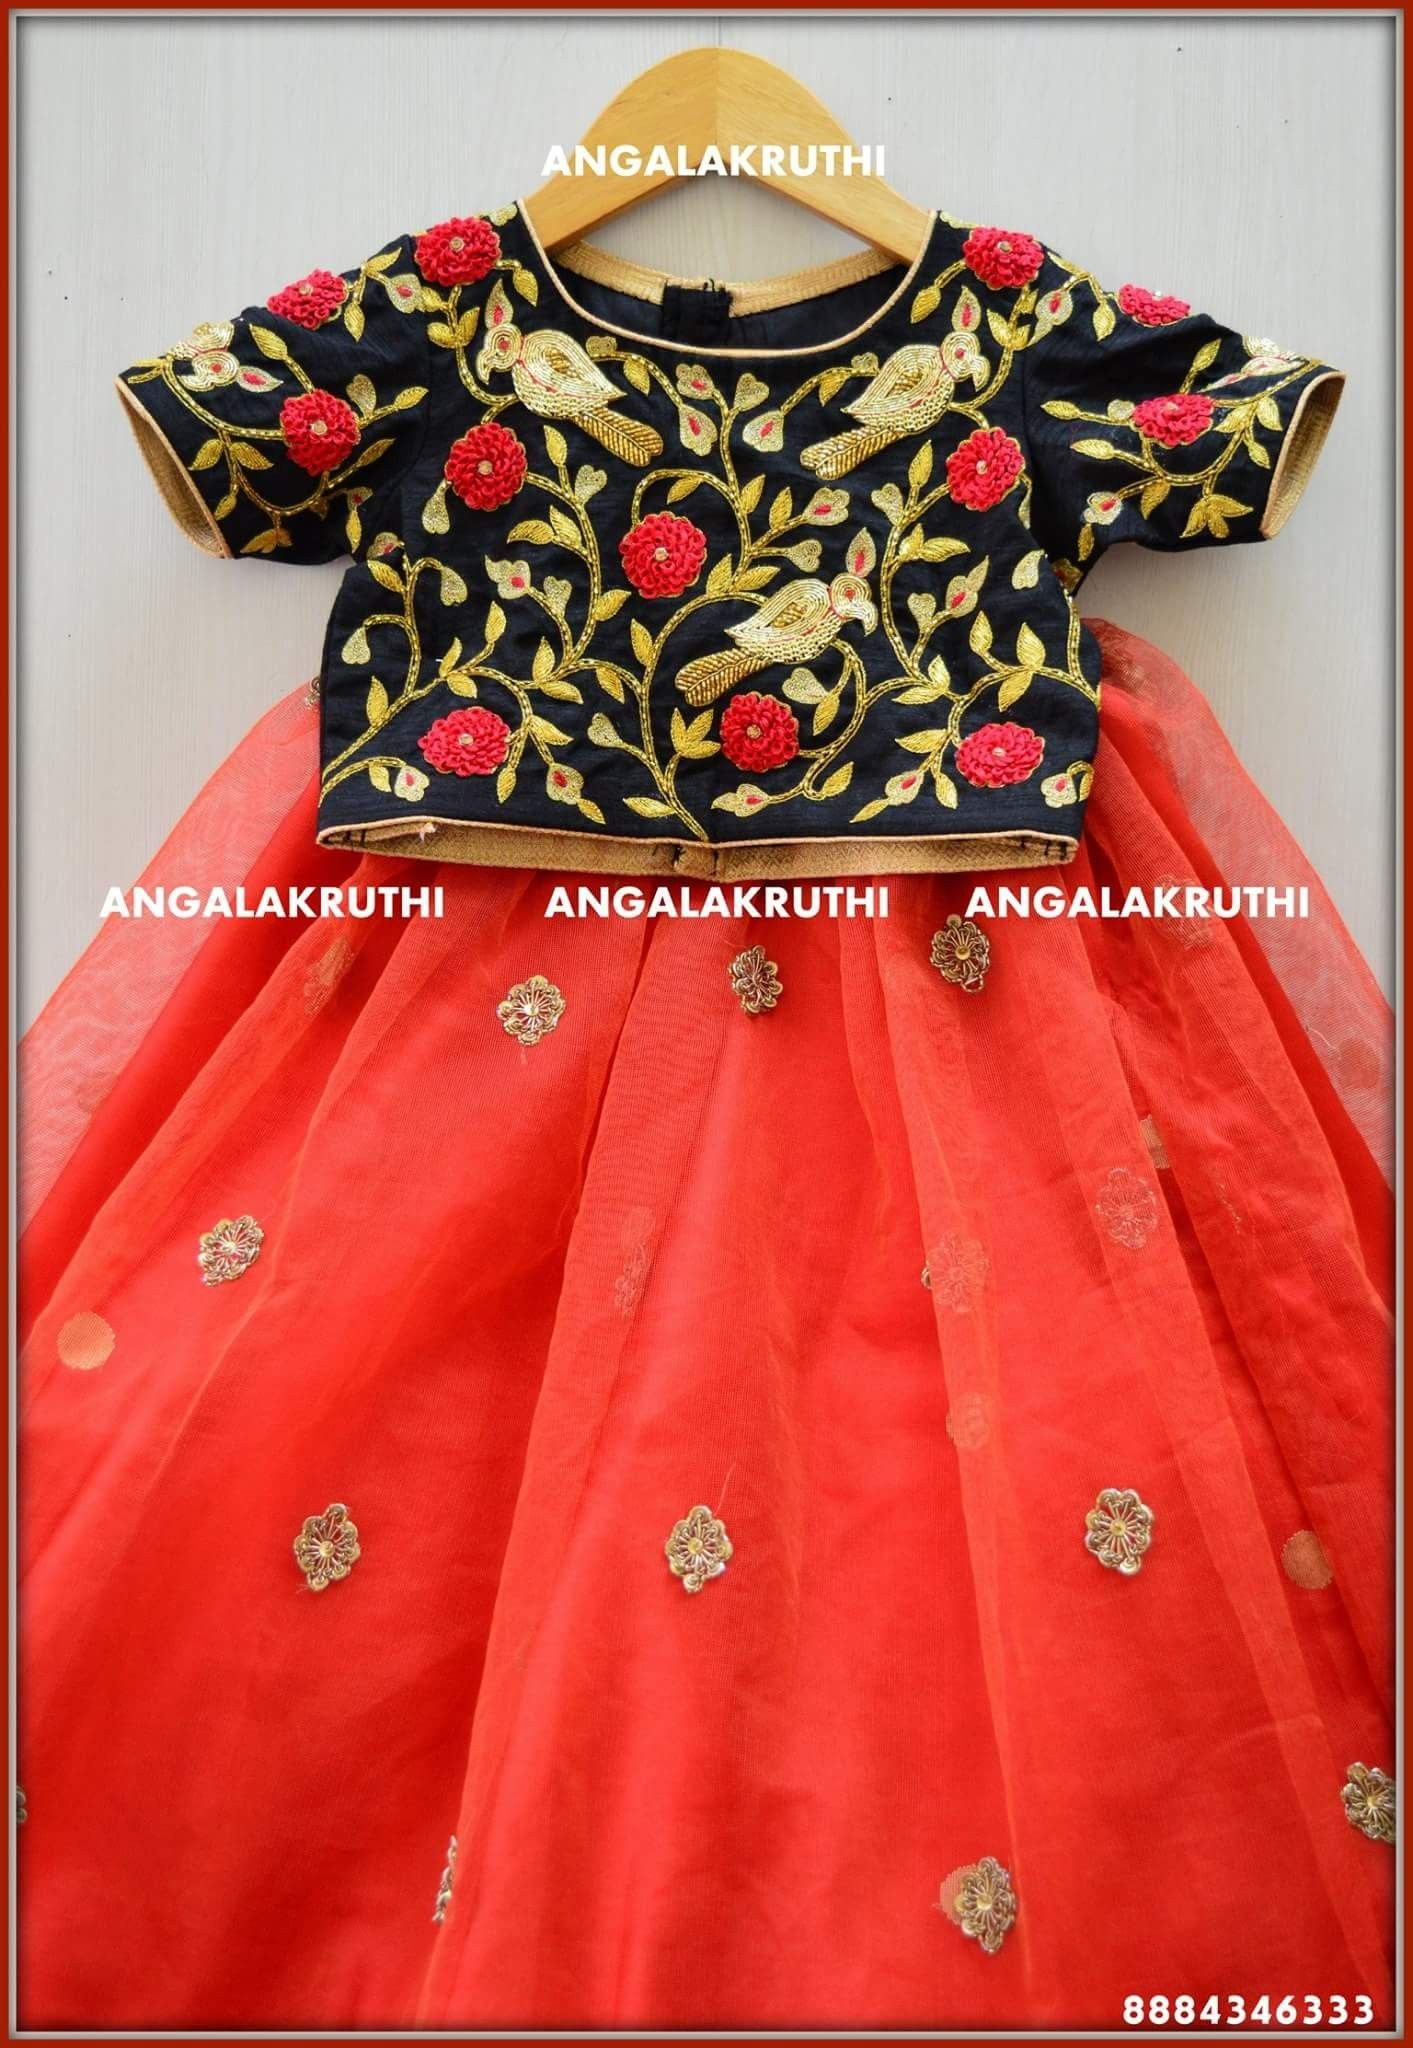 66bbe3b904c Kids Custom designs by Angalakruthi boutique Bangalore Online order  placement service and international shipment service available Custom  designer boutique ...